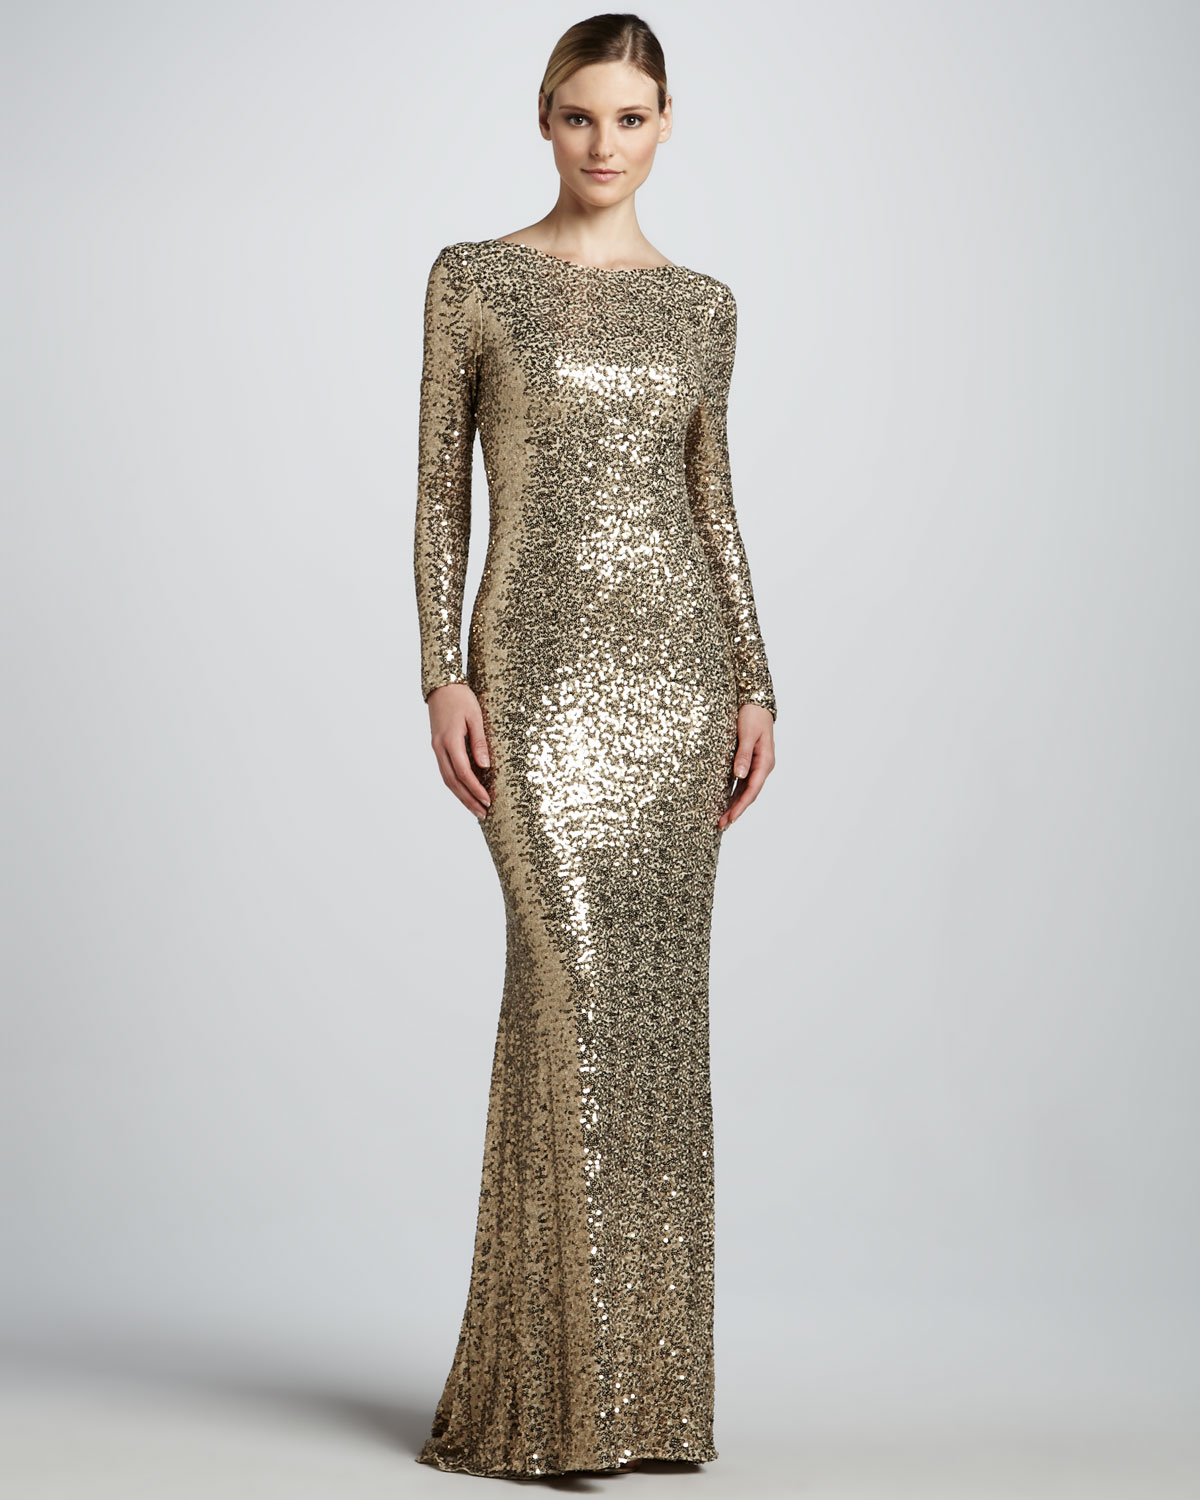 Lyst - Badgley Mischka Sequined Gown with Cowl Back in Metallic